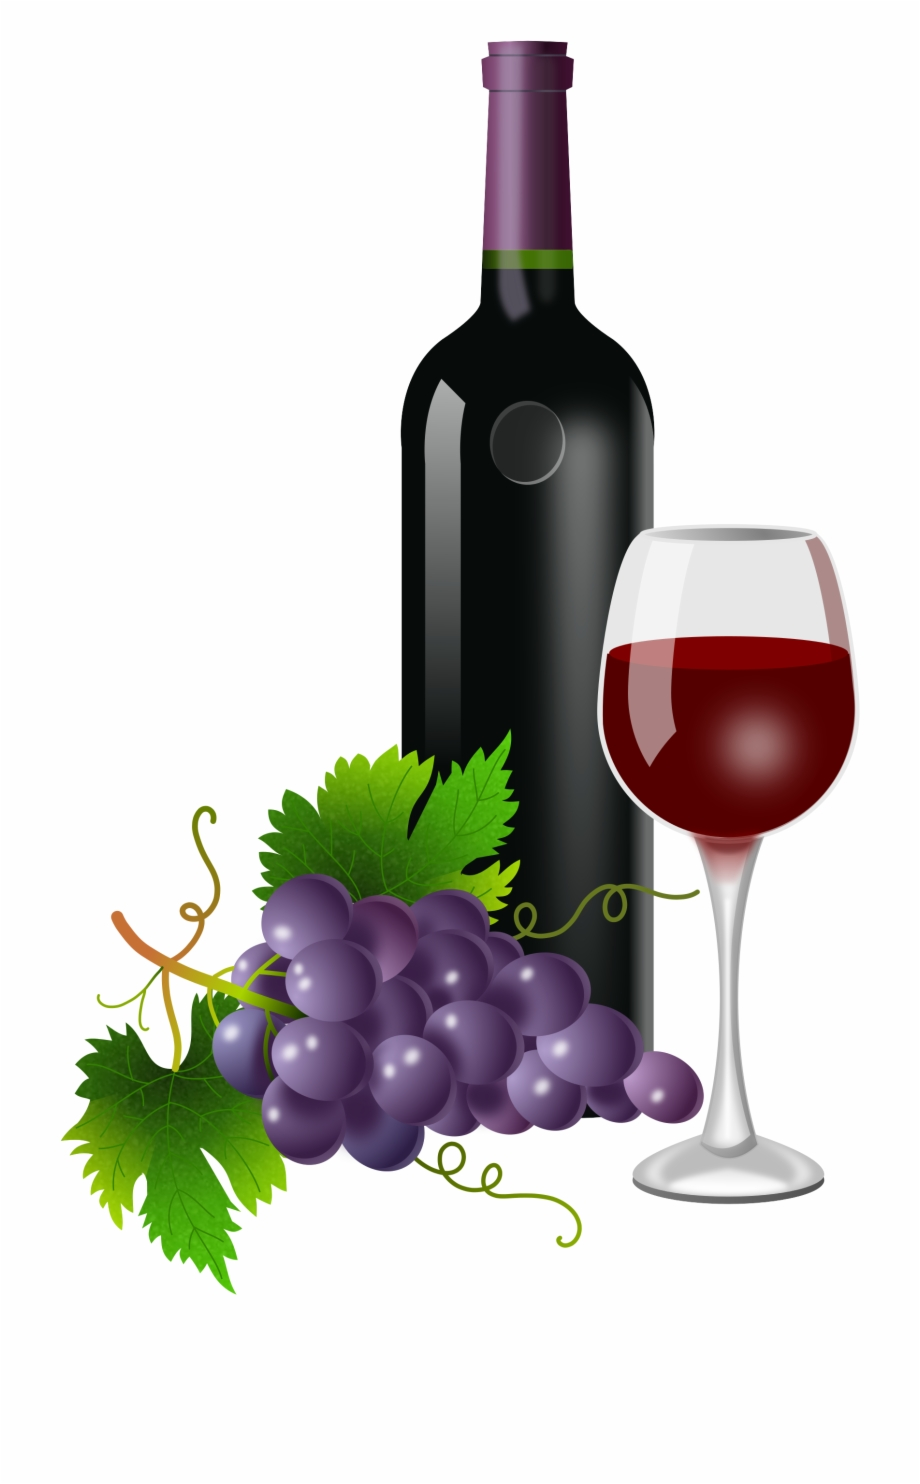 Wine and grapes clipart clipart black and white Png Wine Bottle And Glass - Wine And Grapes Png Free PNG Images ... clipart black and white